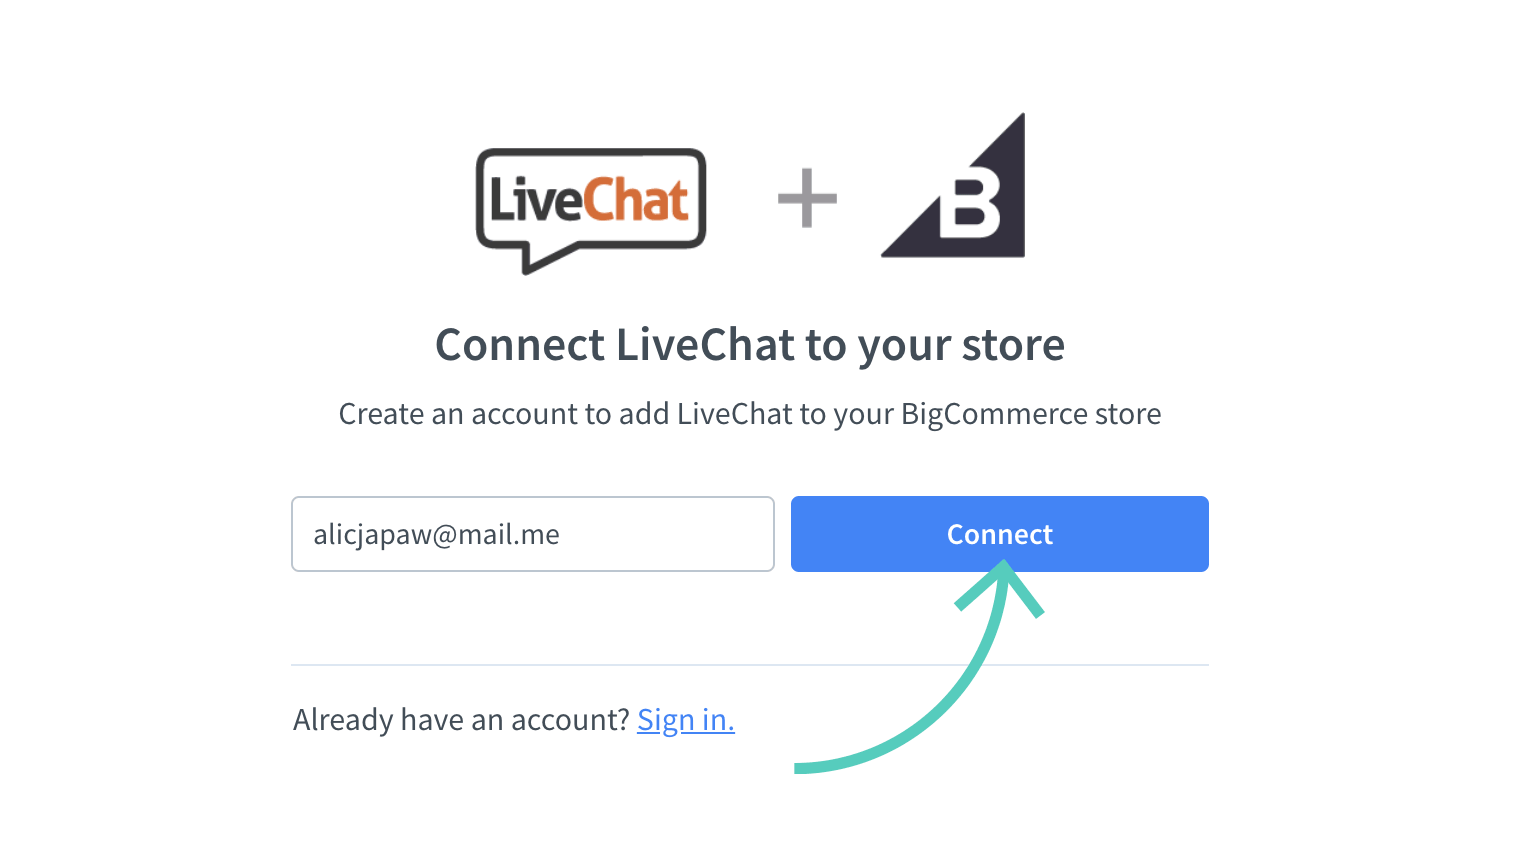 Connect LiveChat account to BigCommerce